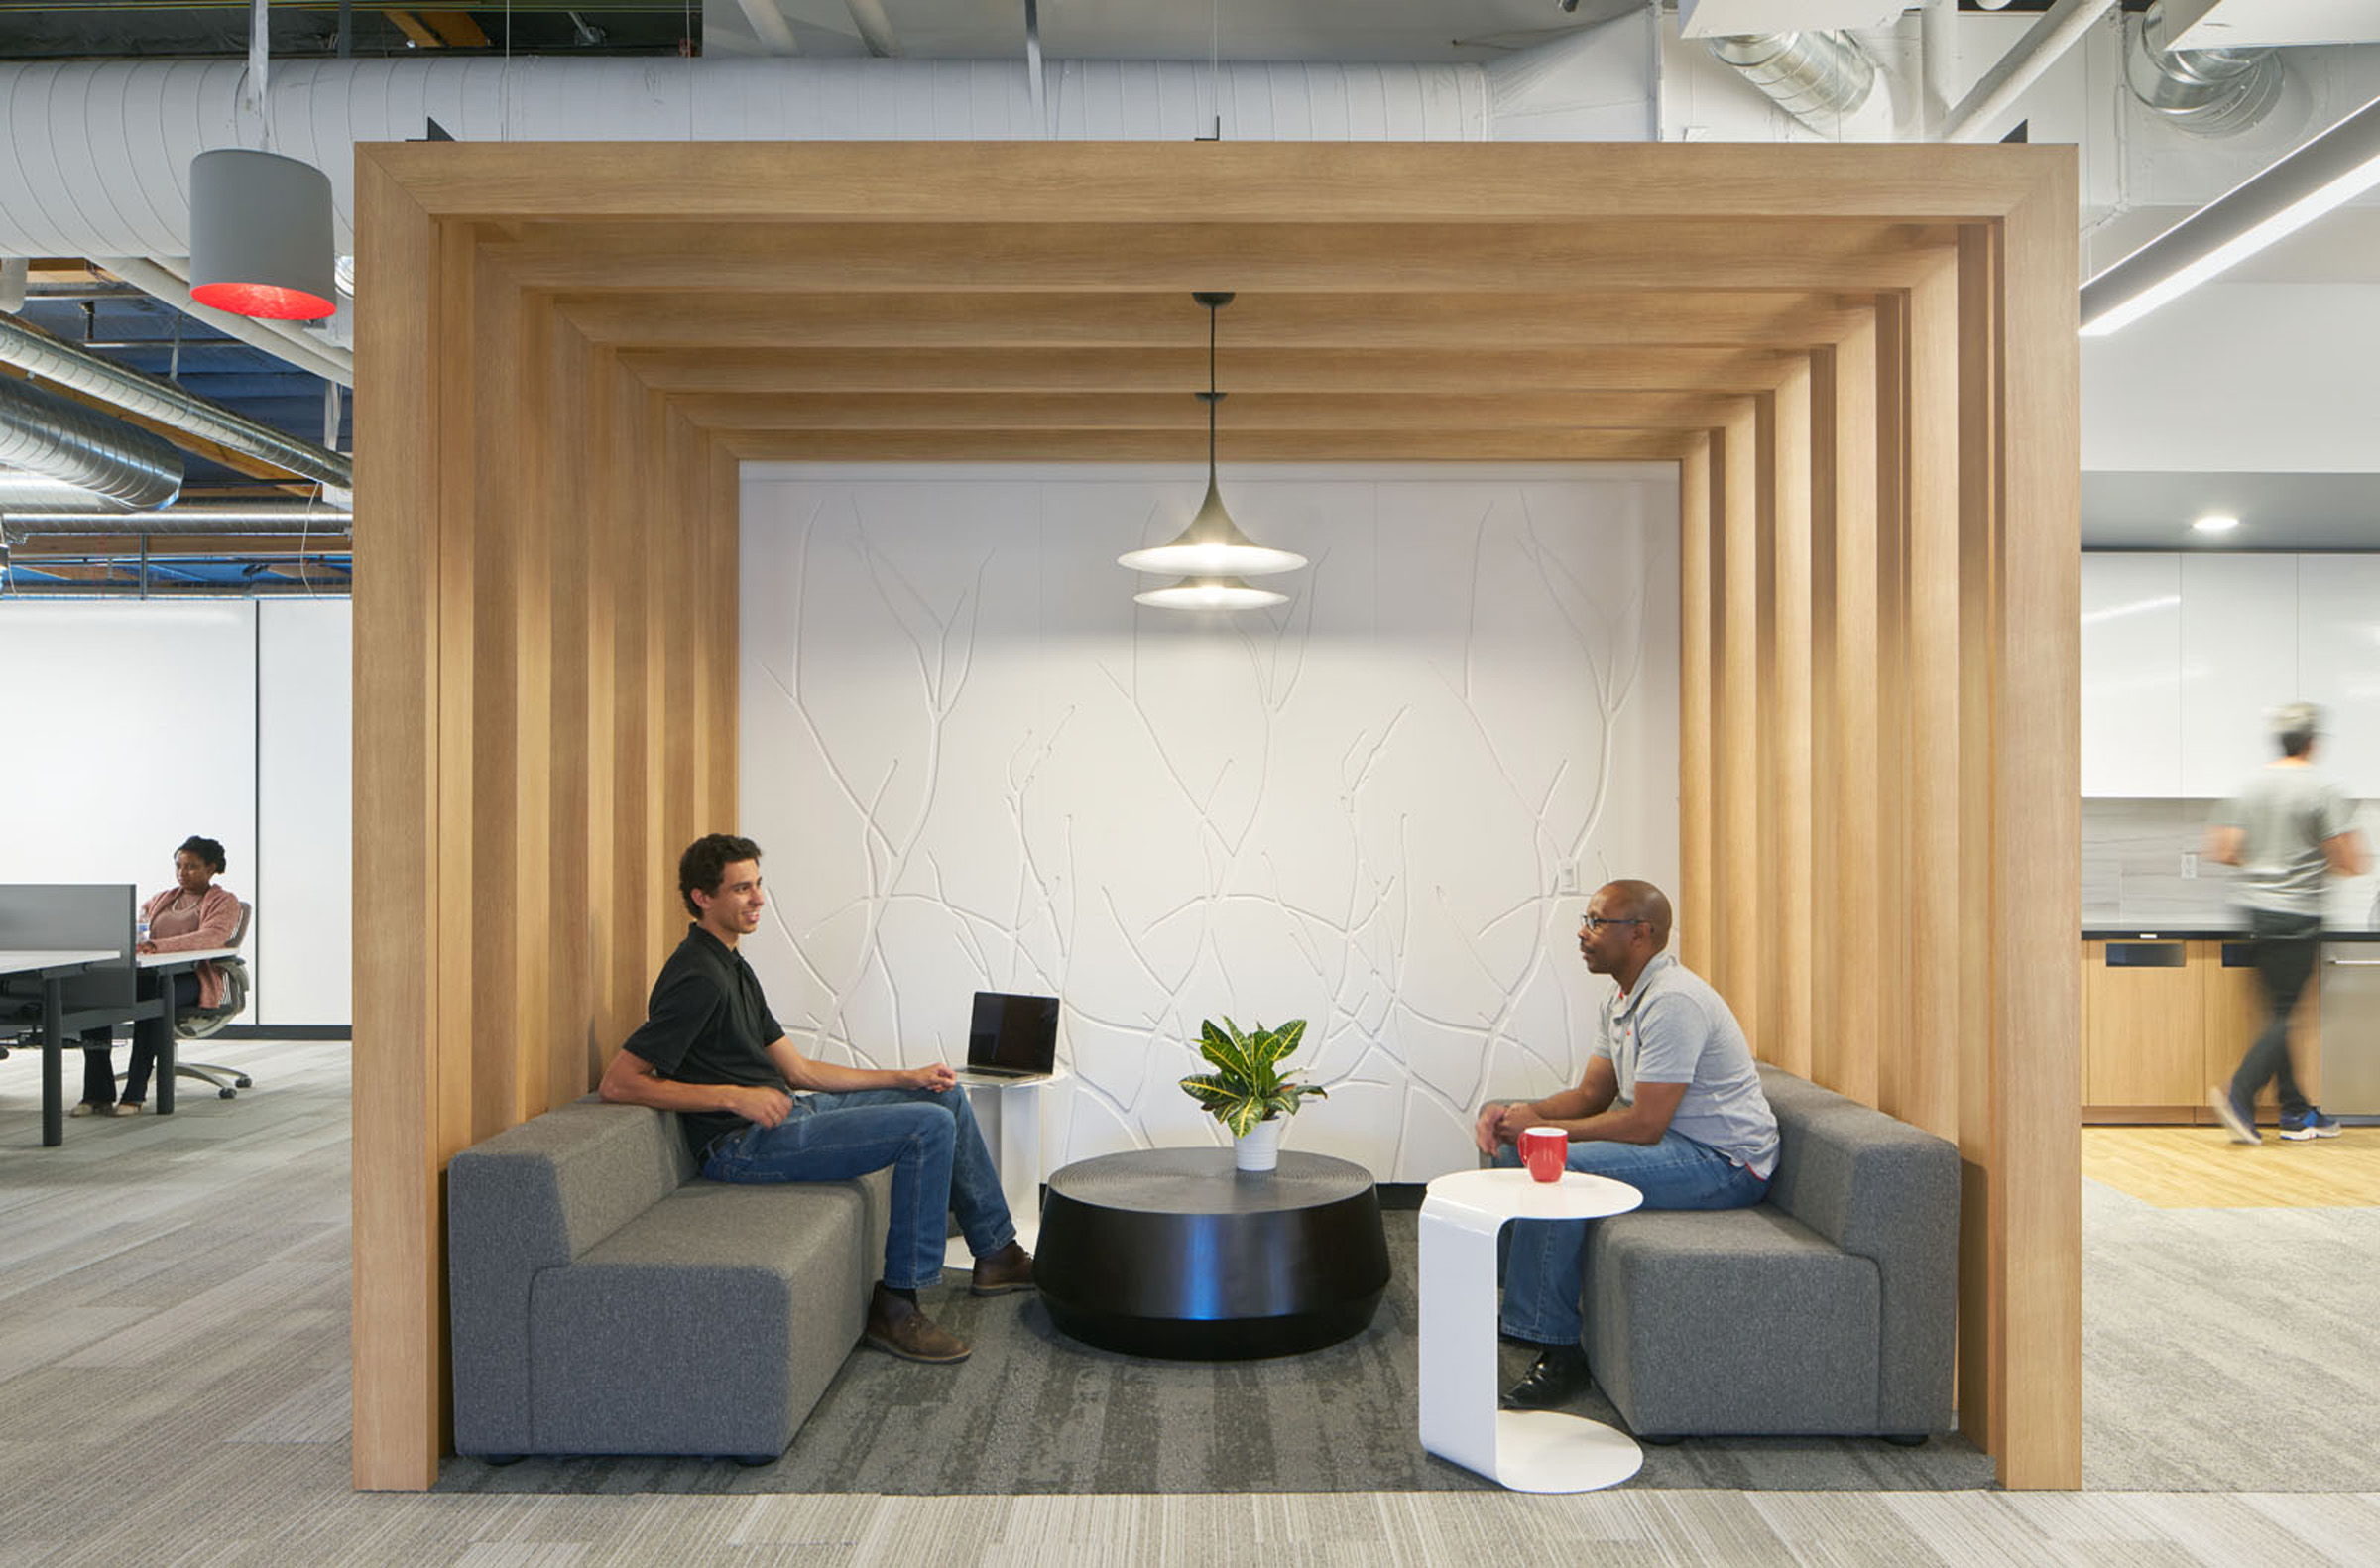 Fortina as architectural space dividers, ceiling interest, and impromptu meeting areas. Northland Control. Finish is Axis Oak.